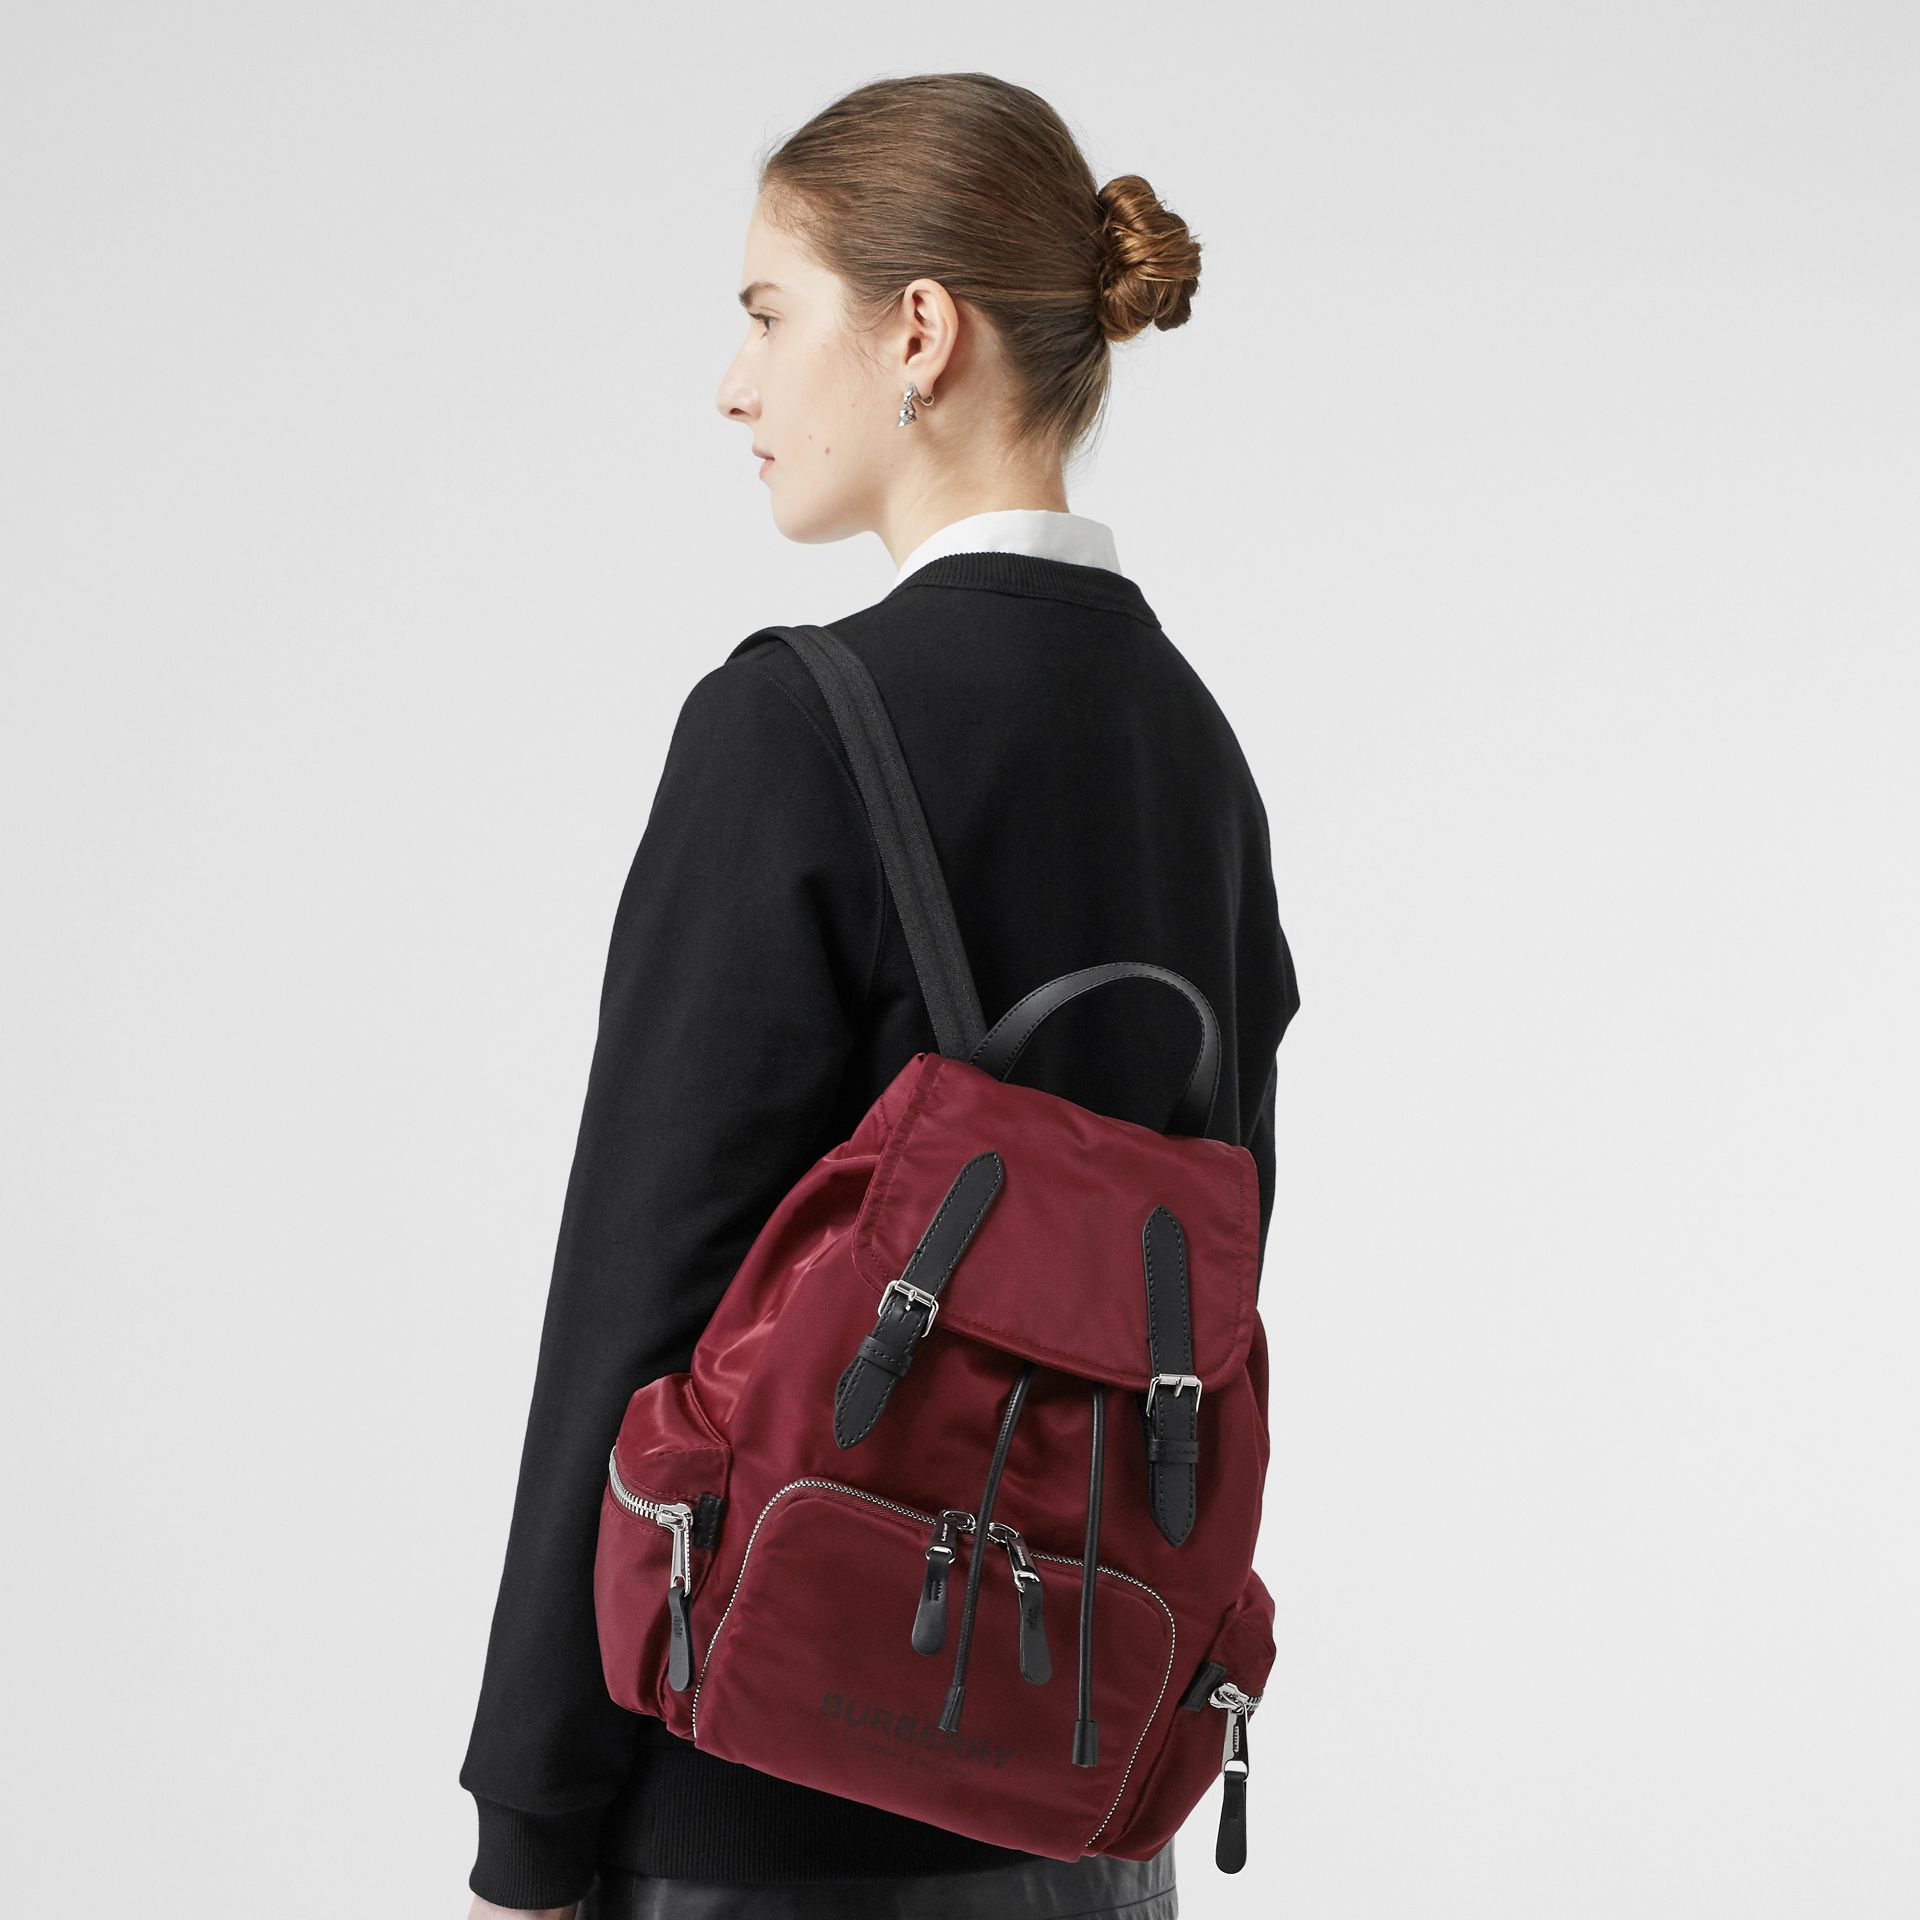 Sac The Rucksack moyen en nylon avec logo (Bourgogne) - Femme | Burberry - photo de la galerie 2